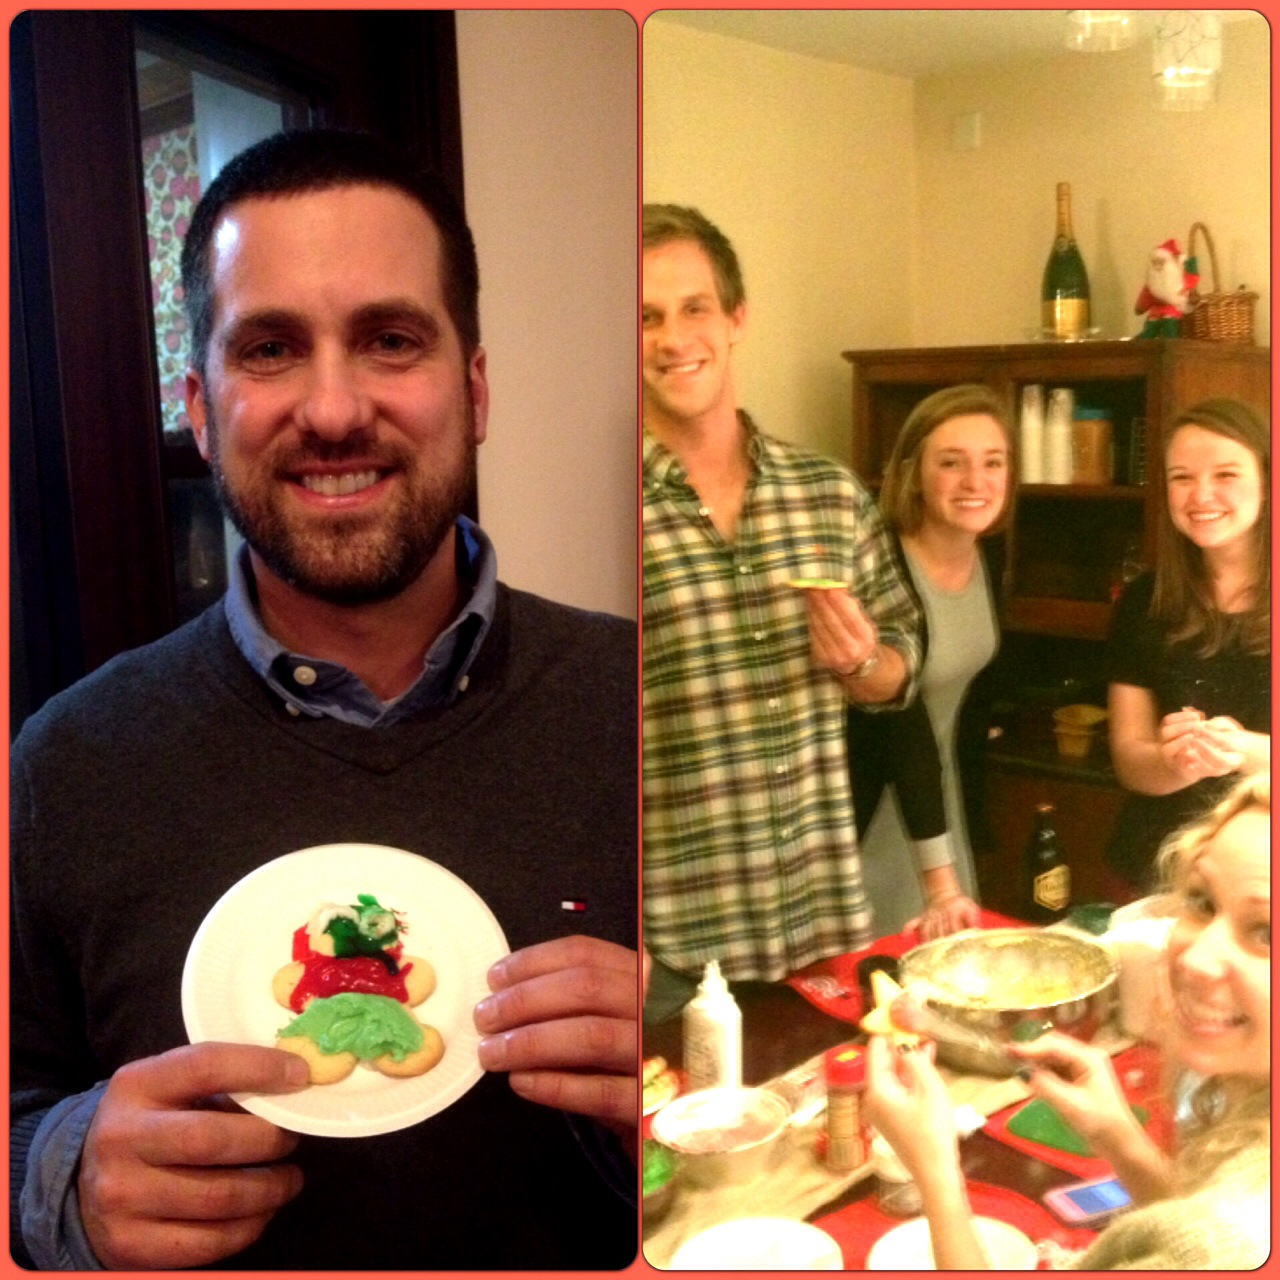 John Gunter with Tyler Lueck, Emily Crane, Kathleen Kimbrough, and Sarah Strong on Christmas Eve.